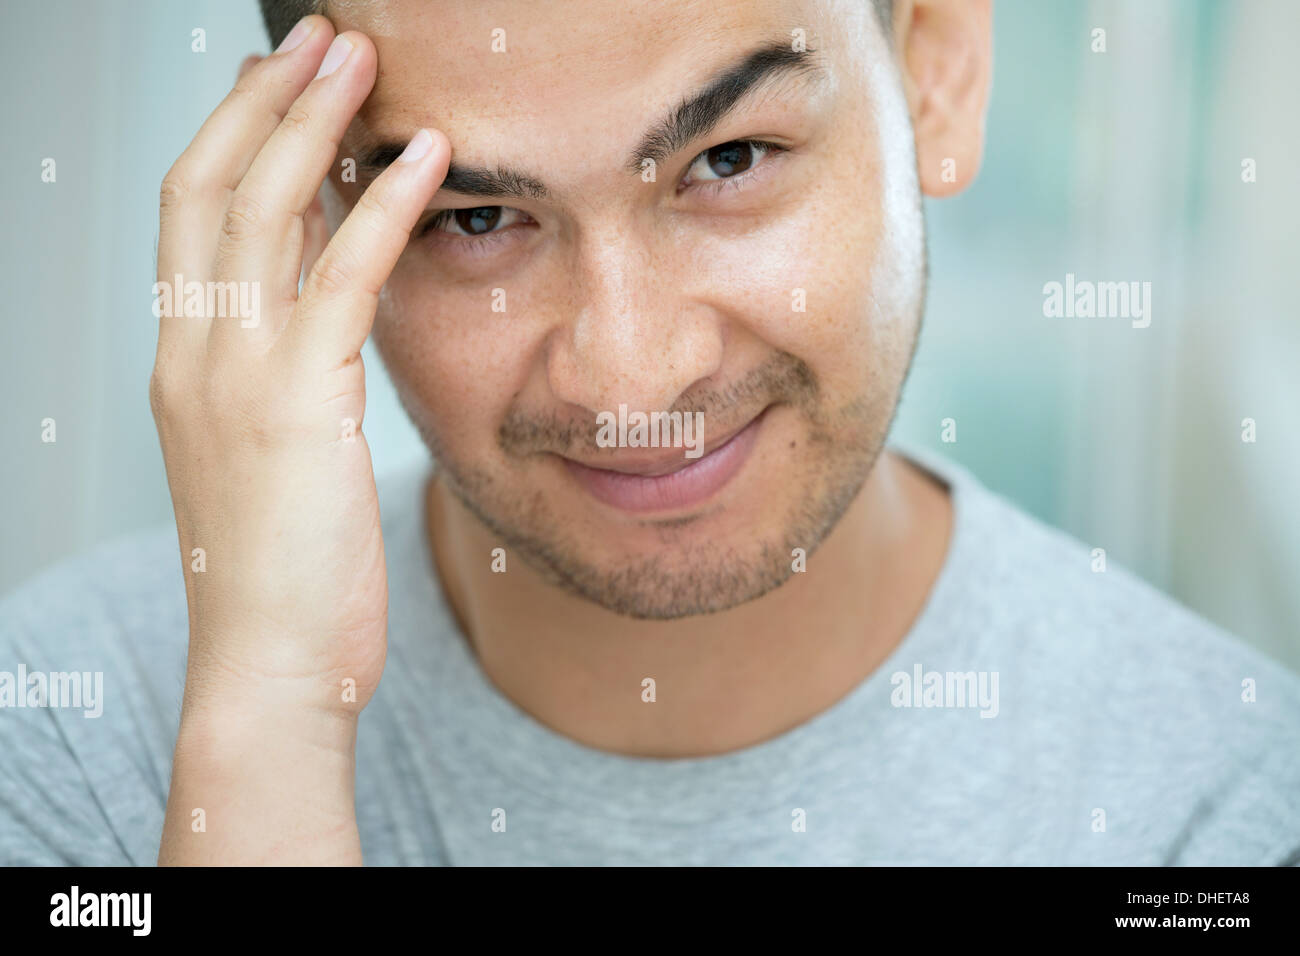 Mid adult man touching his face - Stock Image